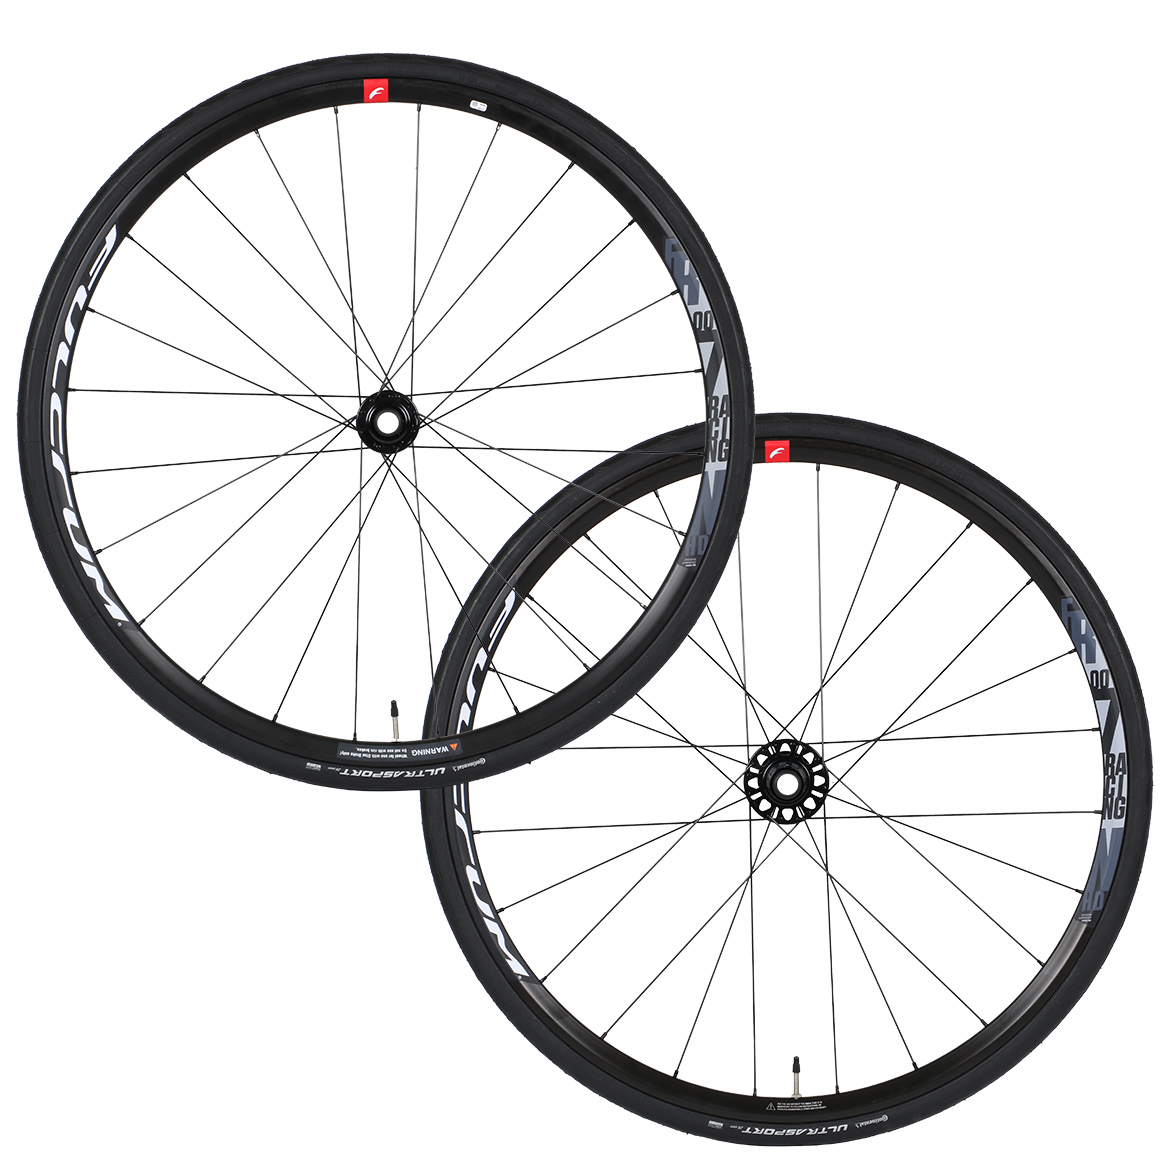 Fulcrum Racing 700 Disc Wheelset With Continental Ultra Sport Tyres